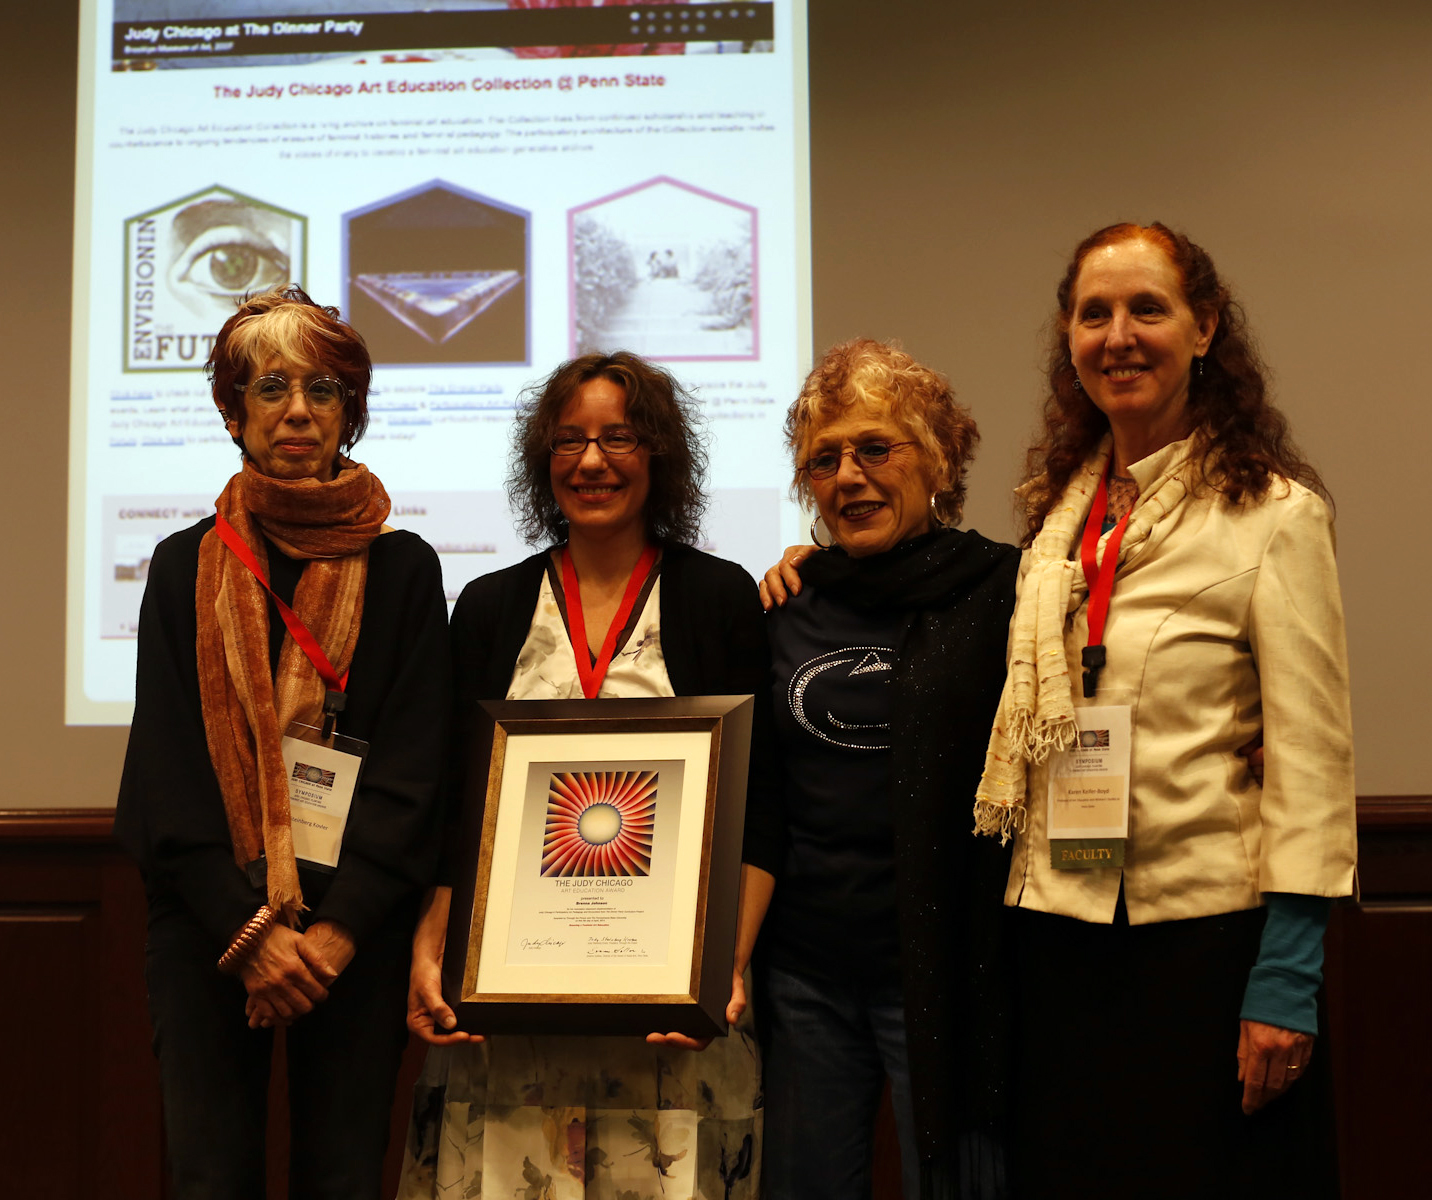 The award ceremony was part of the Judy Chicago Symposium held at Penn State on April 5, 2014. In photo:Judy Kovler, Brenna Johnson, Judy Chicago, Karen Keifer-Boyd